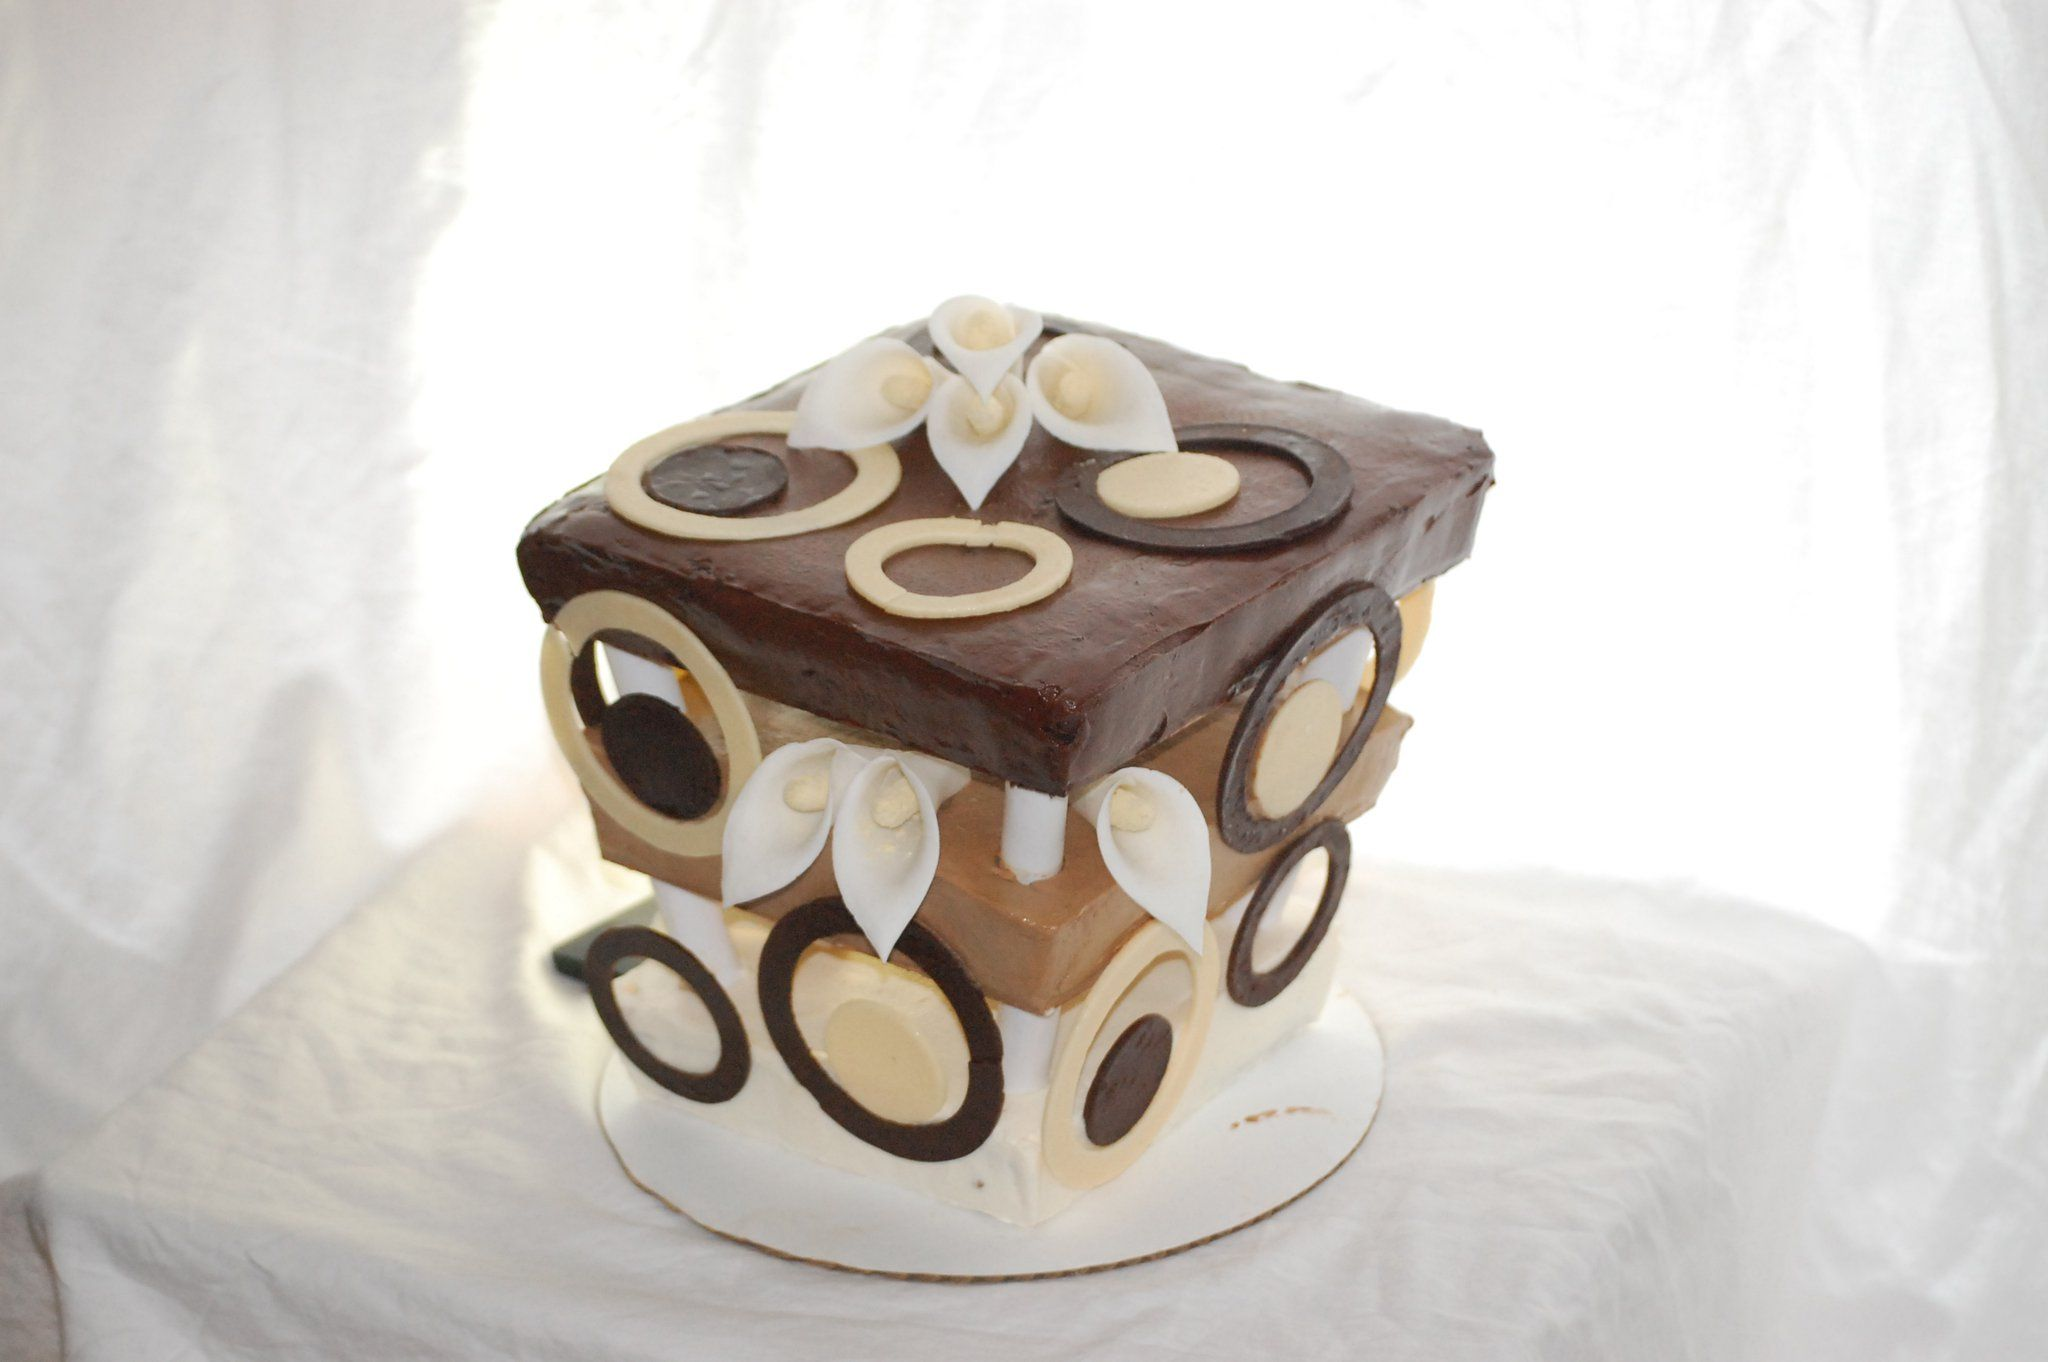 1st tier - banana nut w/ cream cheese icing. 2nd tier - yellow cake with caramel cream icing. 3rd tier - dark chocolate cake with rich chocolate icing. Adorned with white and dark chocolate rings and gum paste calla lilies.